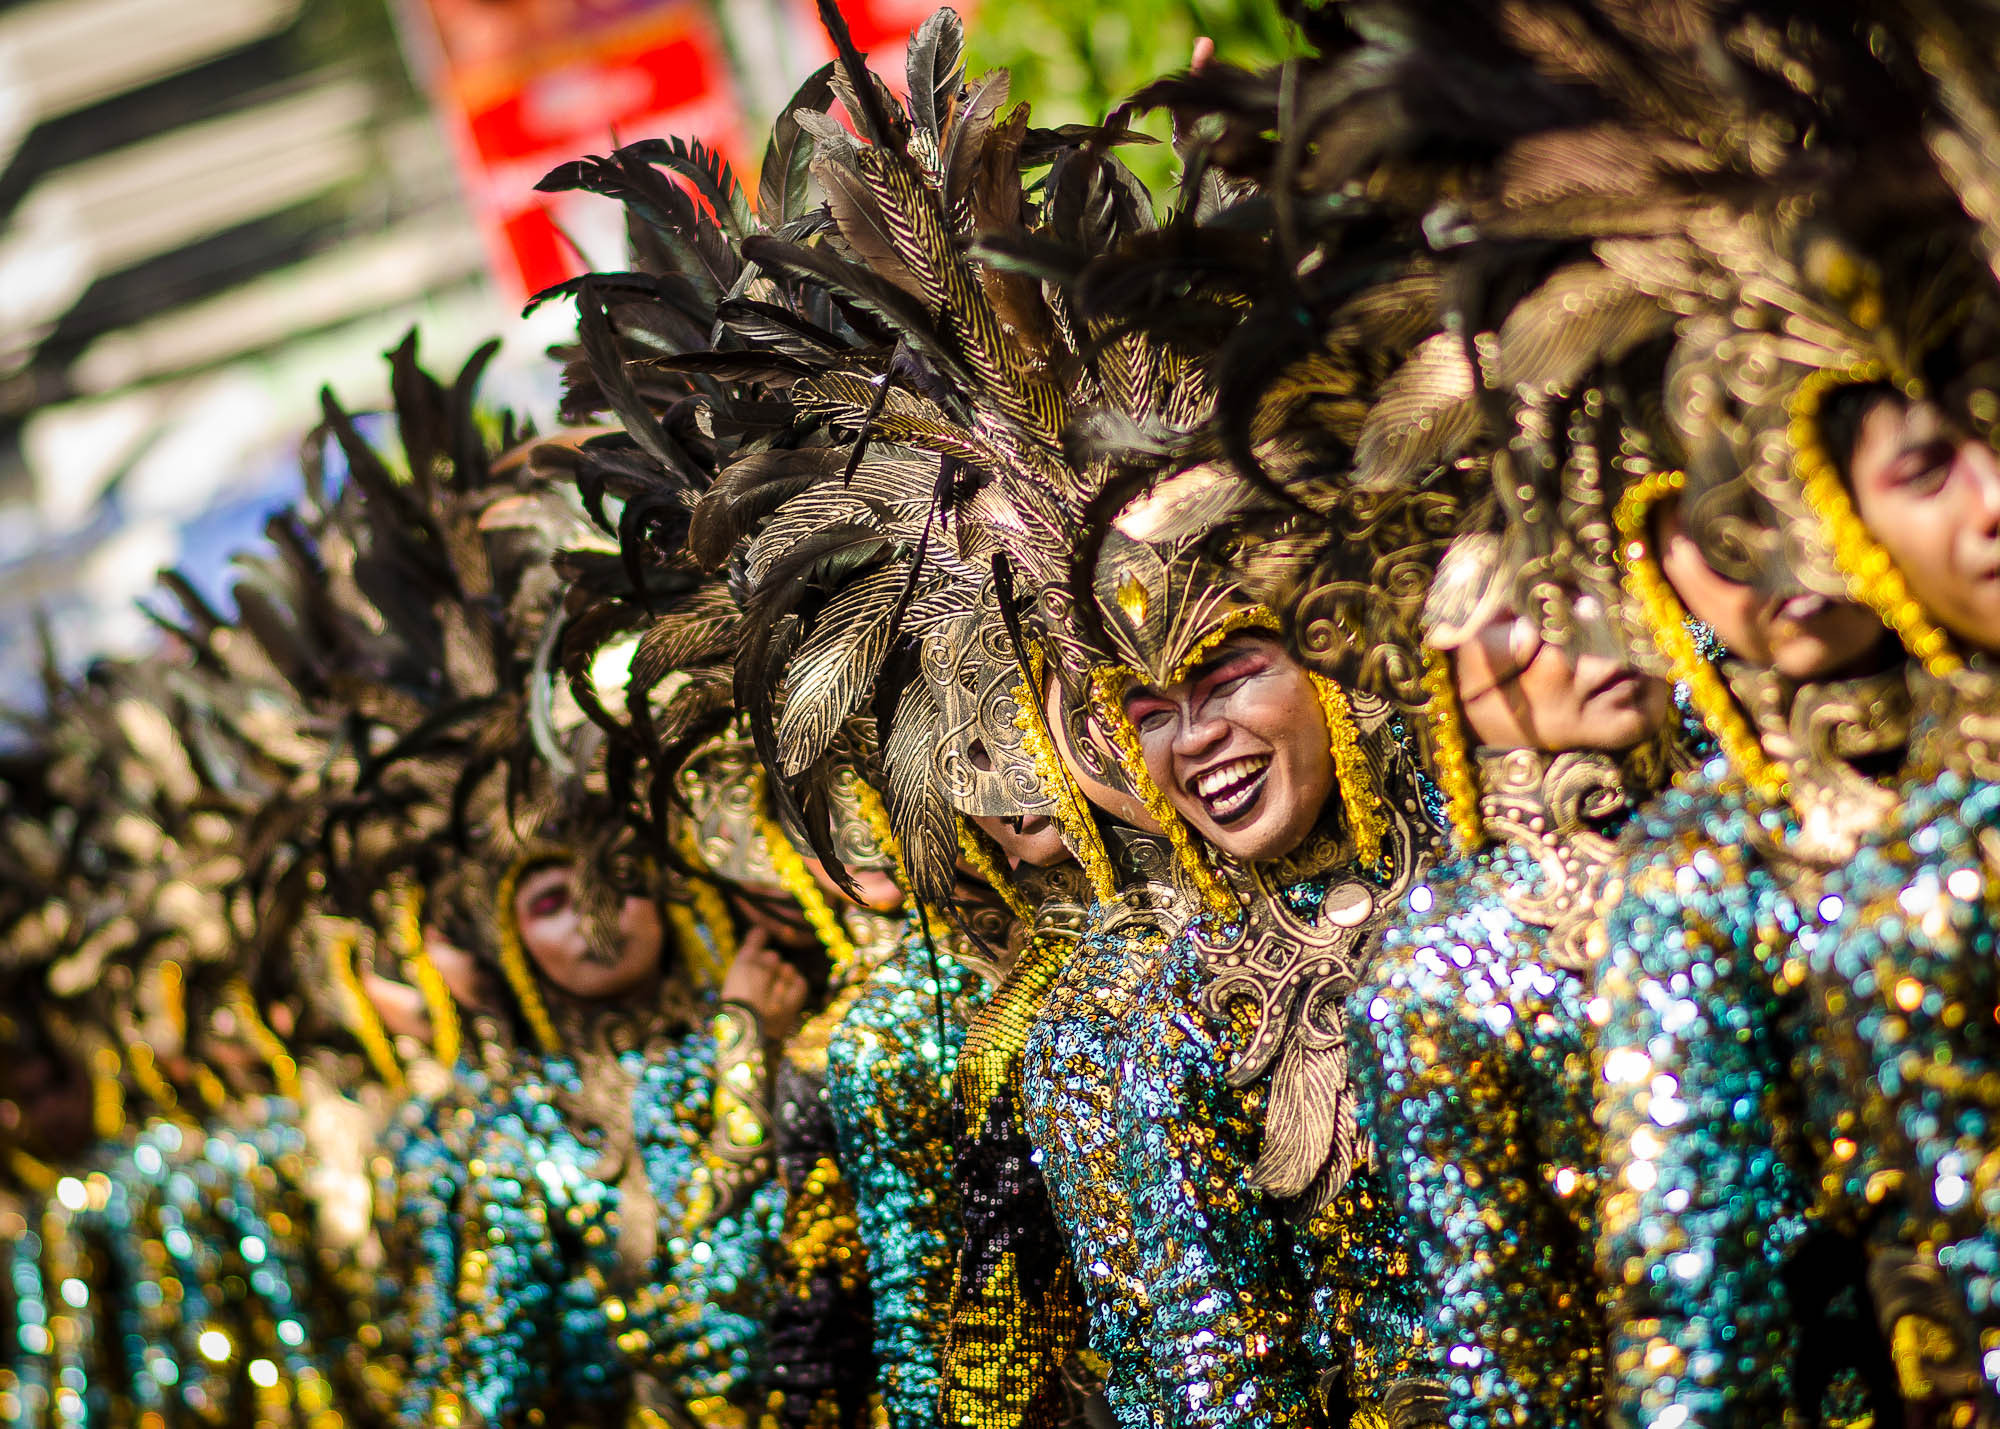 Photograph The Sinulog Festival by Jupert Sison on 500px